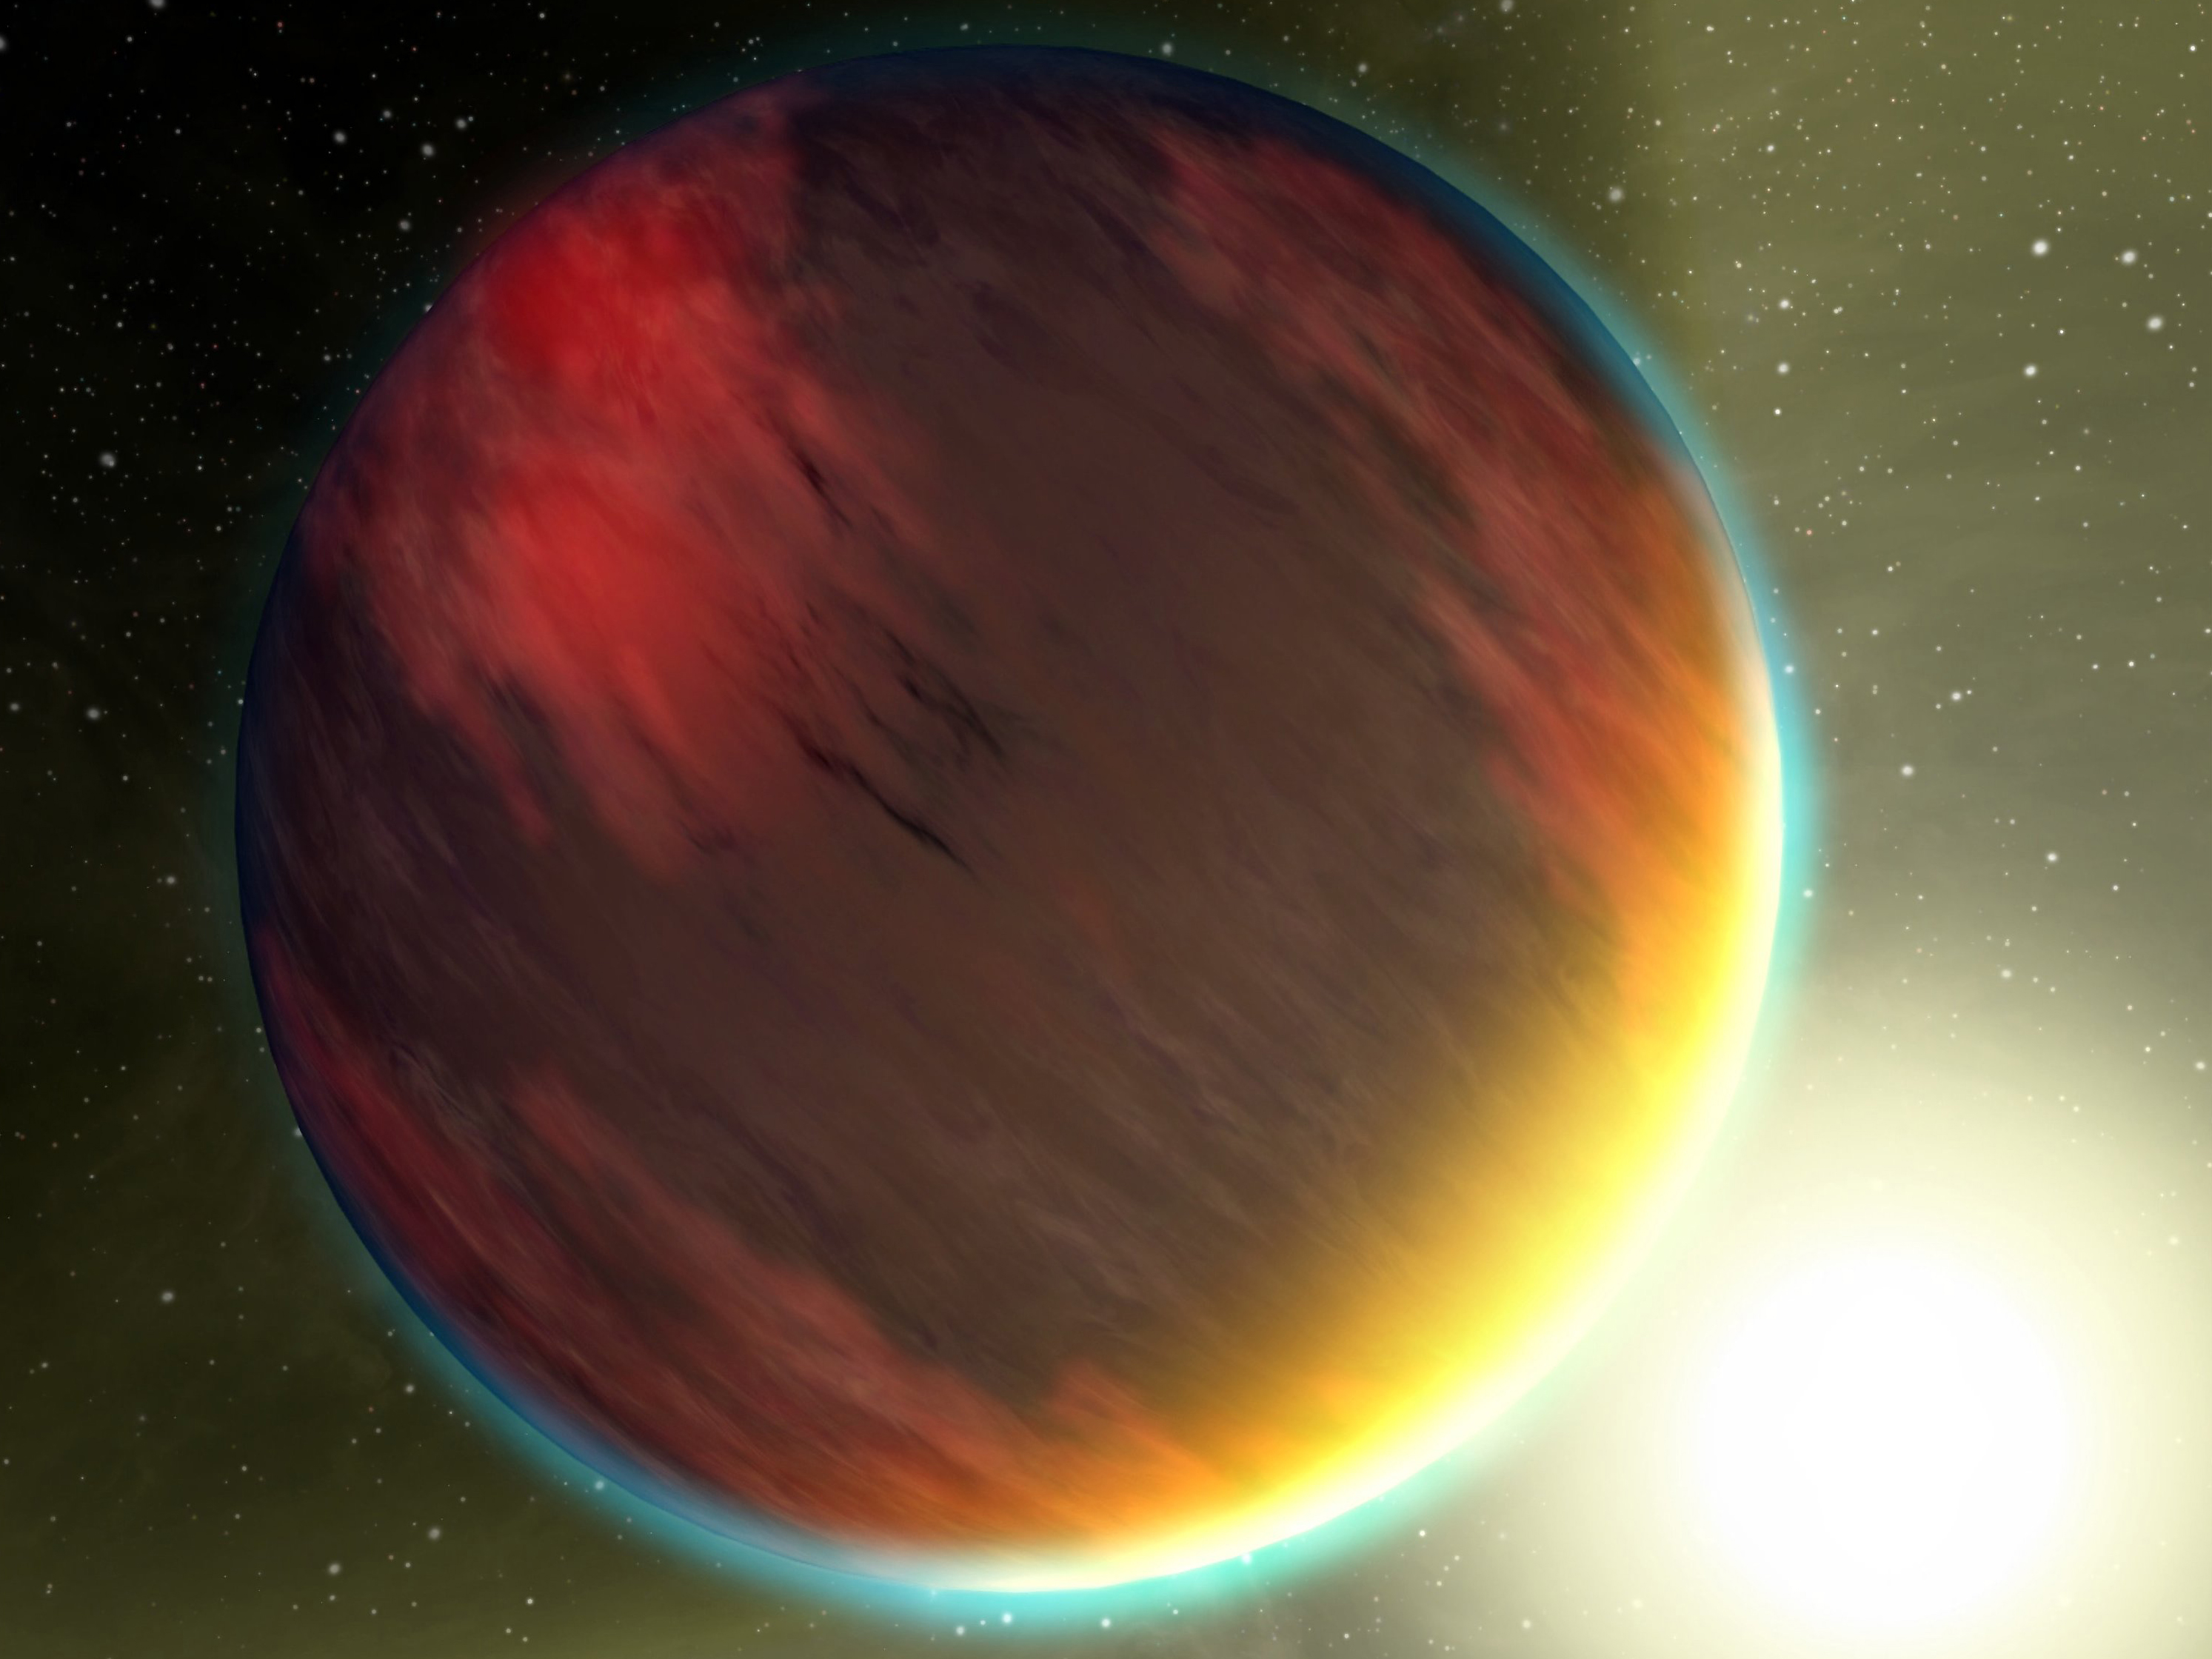 kepler a planet behind neptune - photo #6